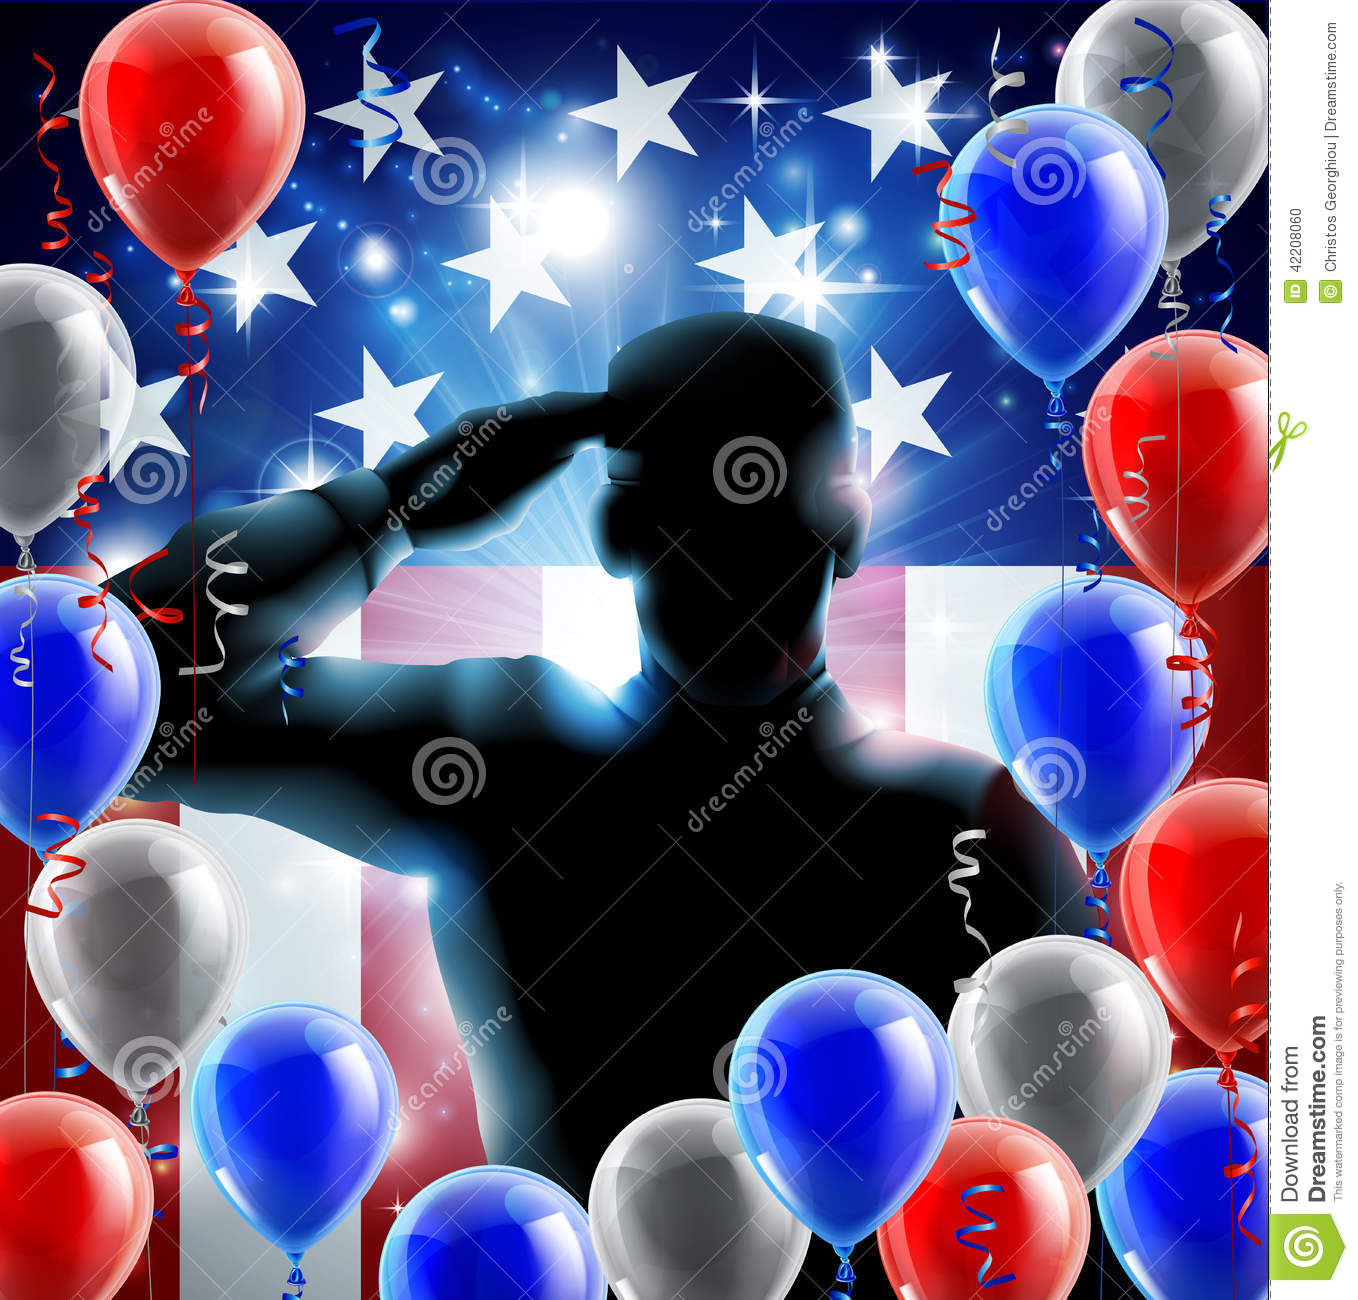 465ca0361b1 Patriotic soldier or veteran saluting in front of an American flag veterans  day background with red white and blue balloons and streamers